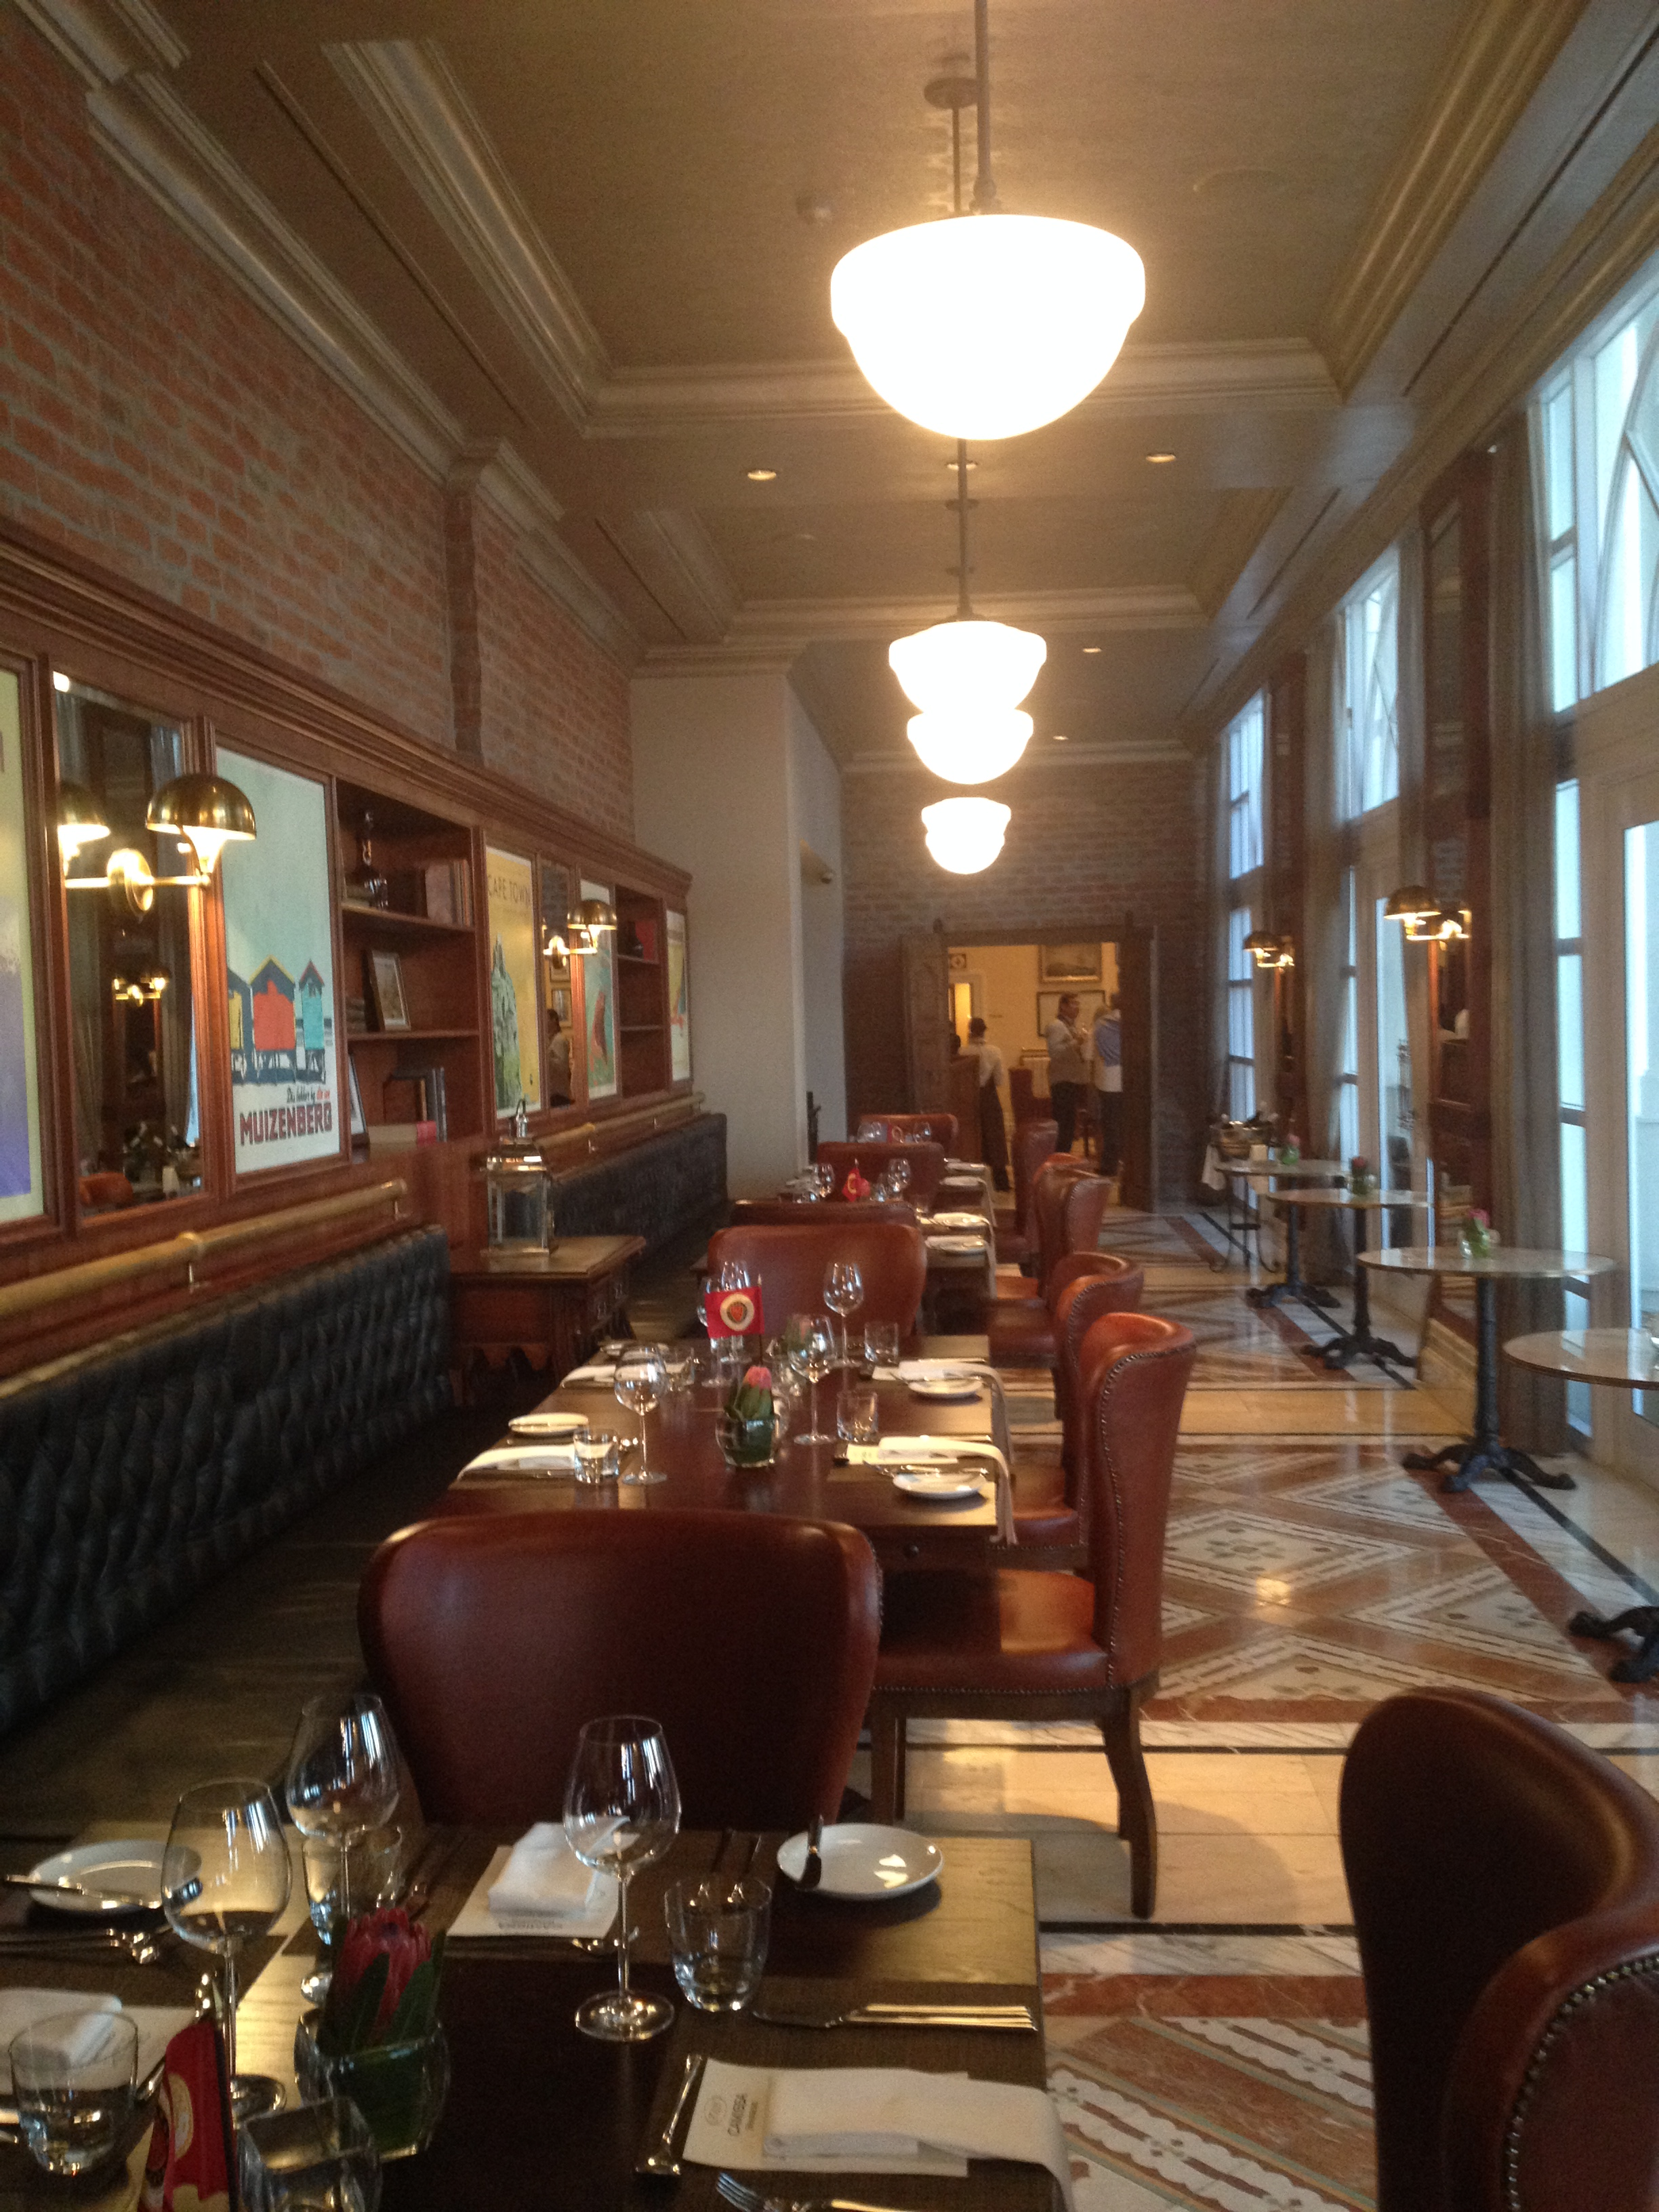 Camissa Brasserie At Table Bay Hotel Chic Interior Does Not Live Up To 39 Cape Heritage Food